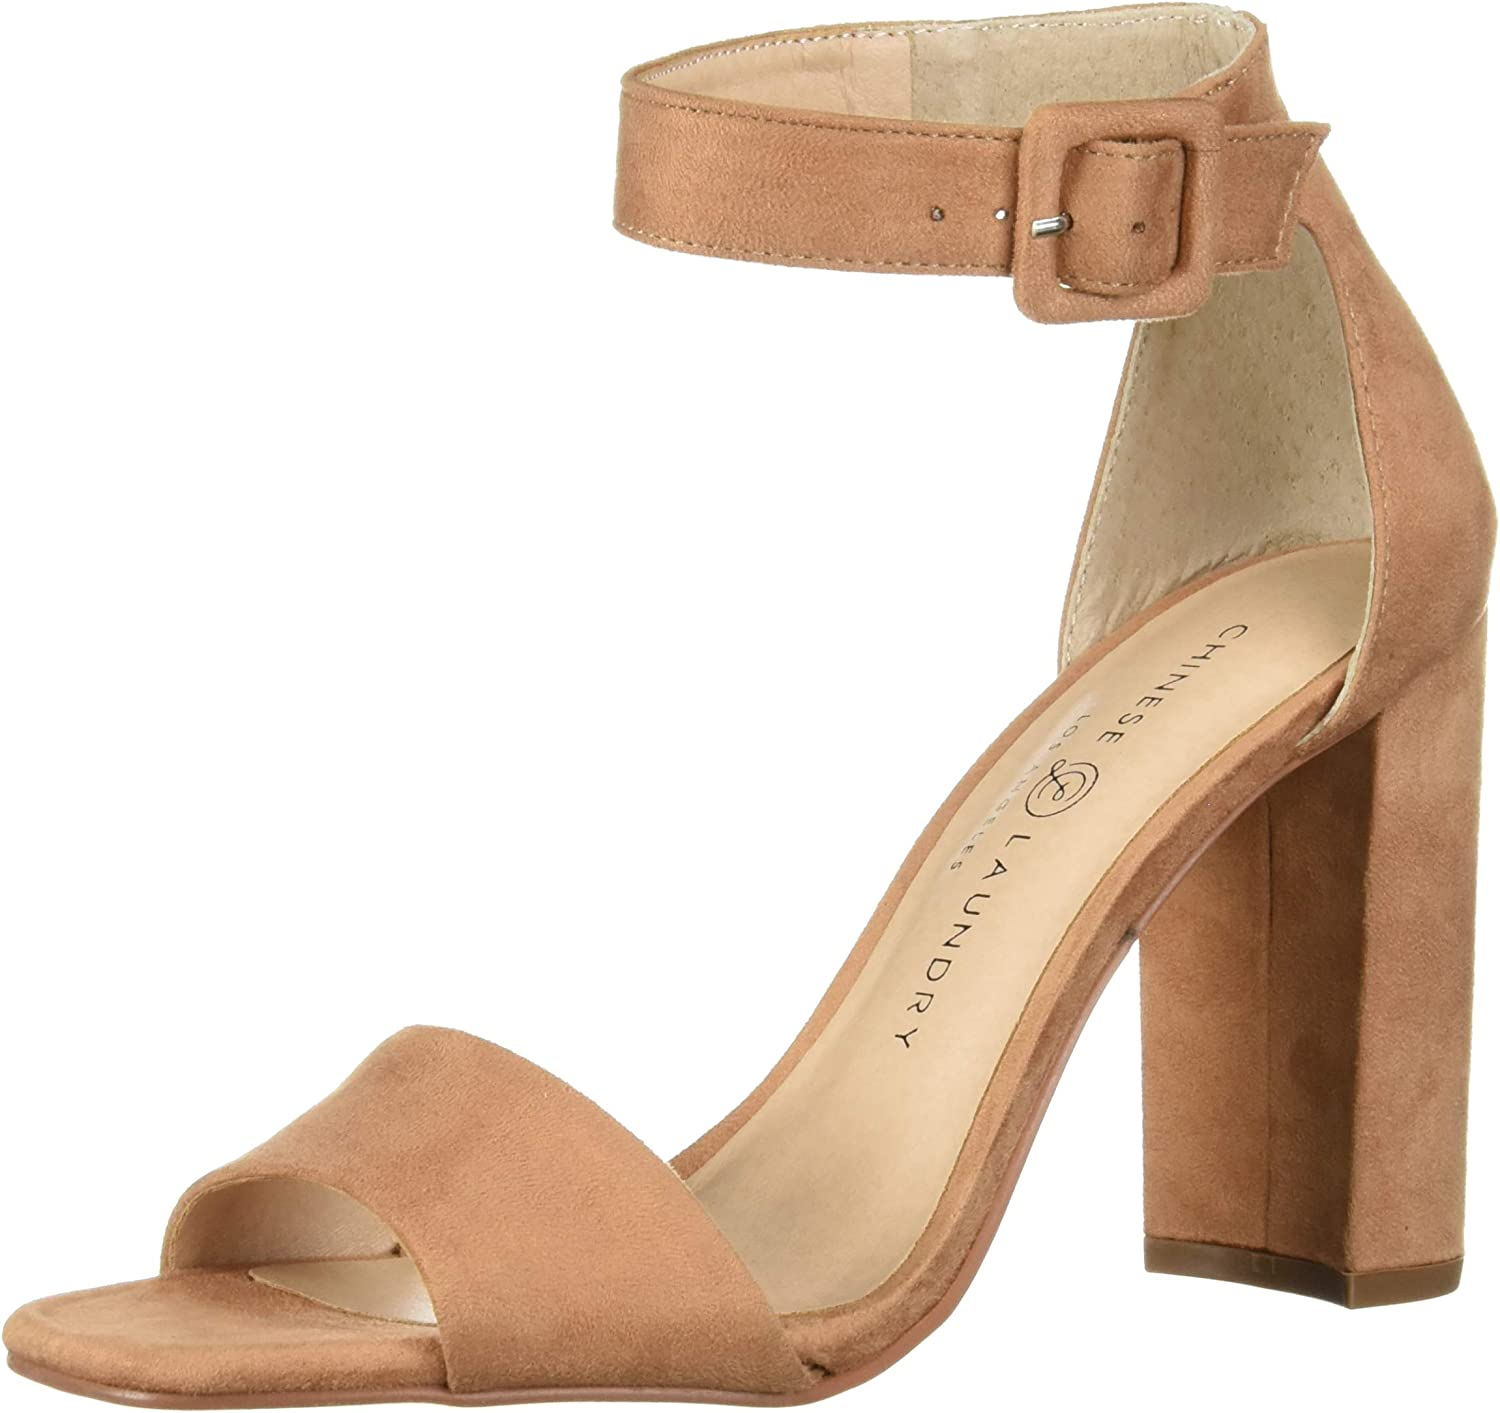 Chinese Laundry Women's Jettie Heeled Sandal